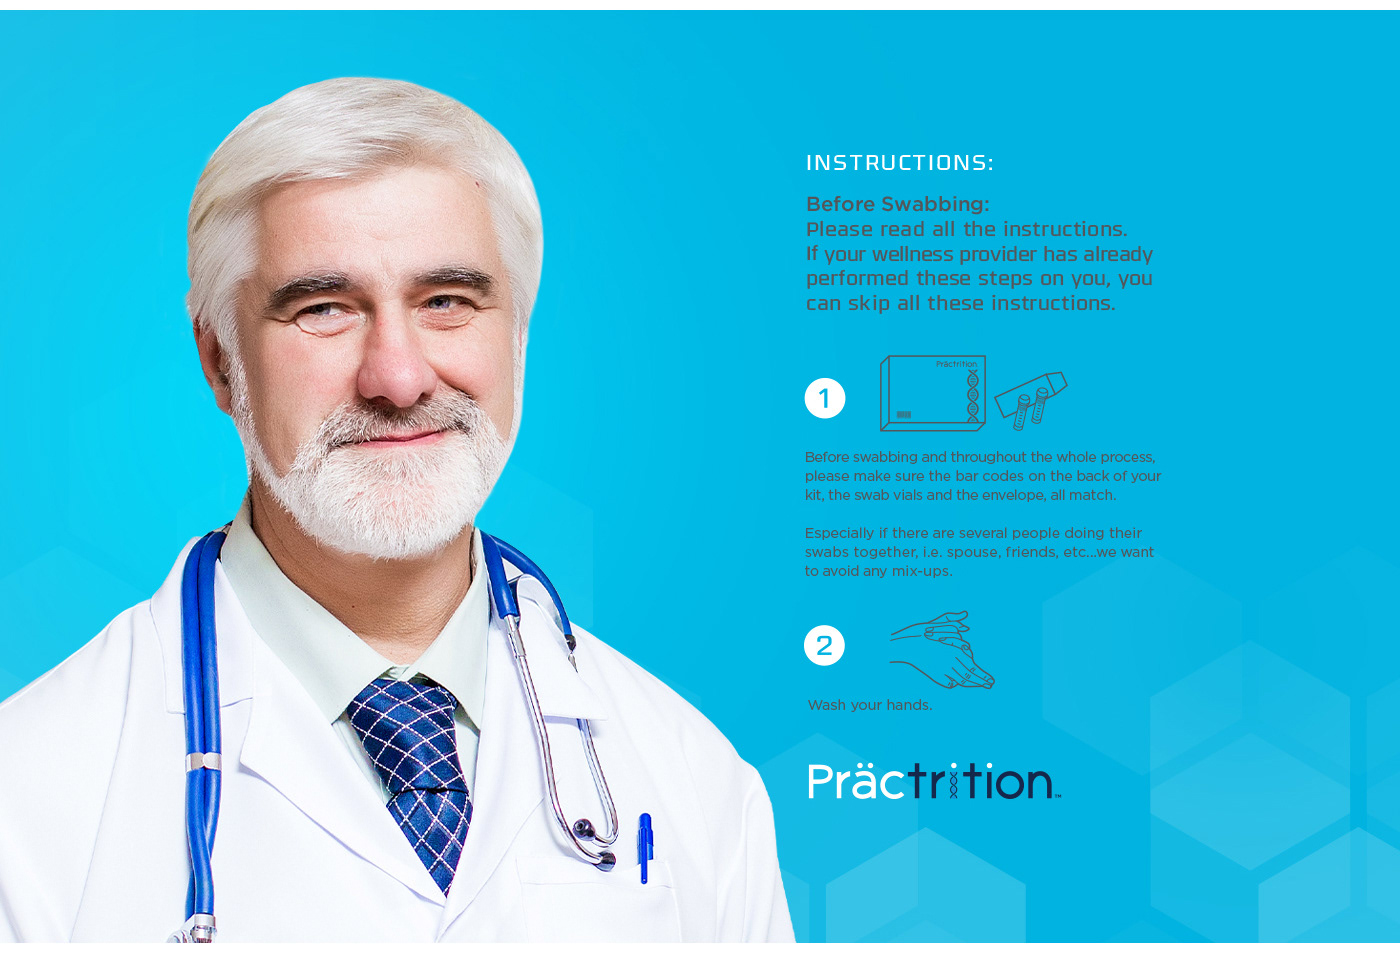 dna testing kit box,Editorial Layouts,icons and DNA Helix,inspire,logo branding,medical health doctors,nutritional supplements,pantone colors,supplemental packaging,Webpage designs